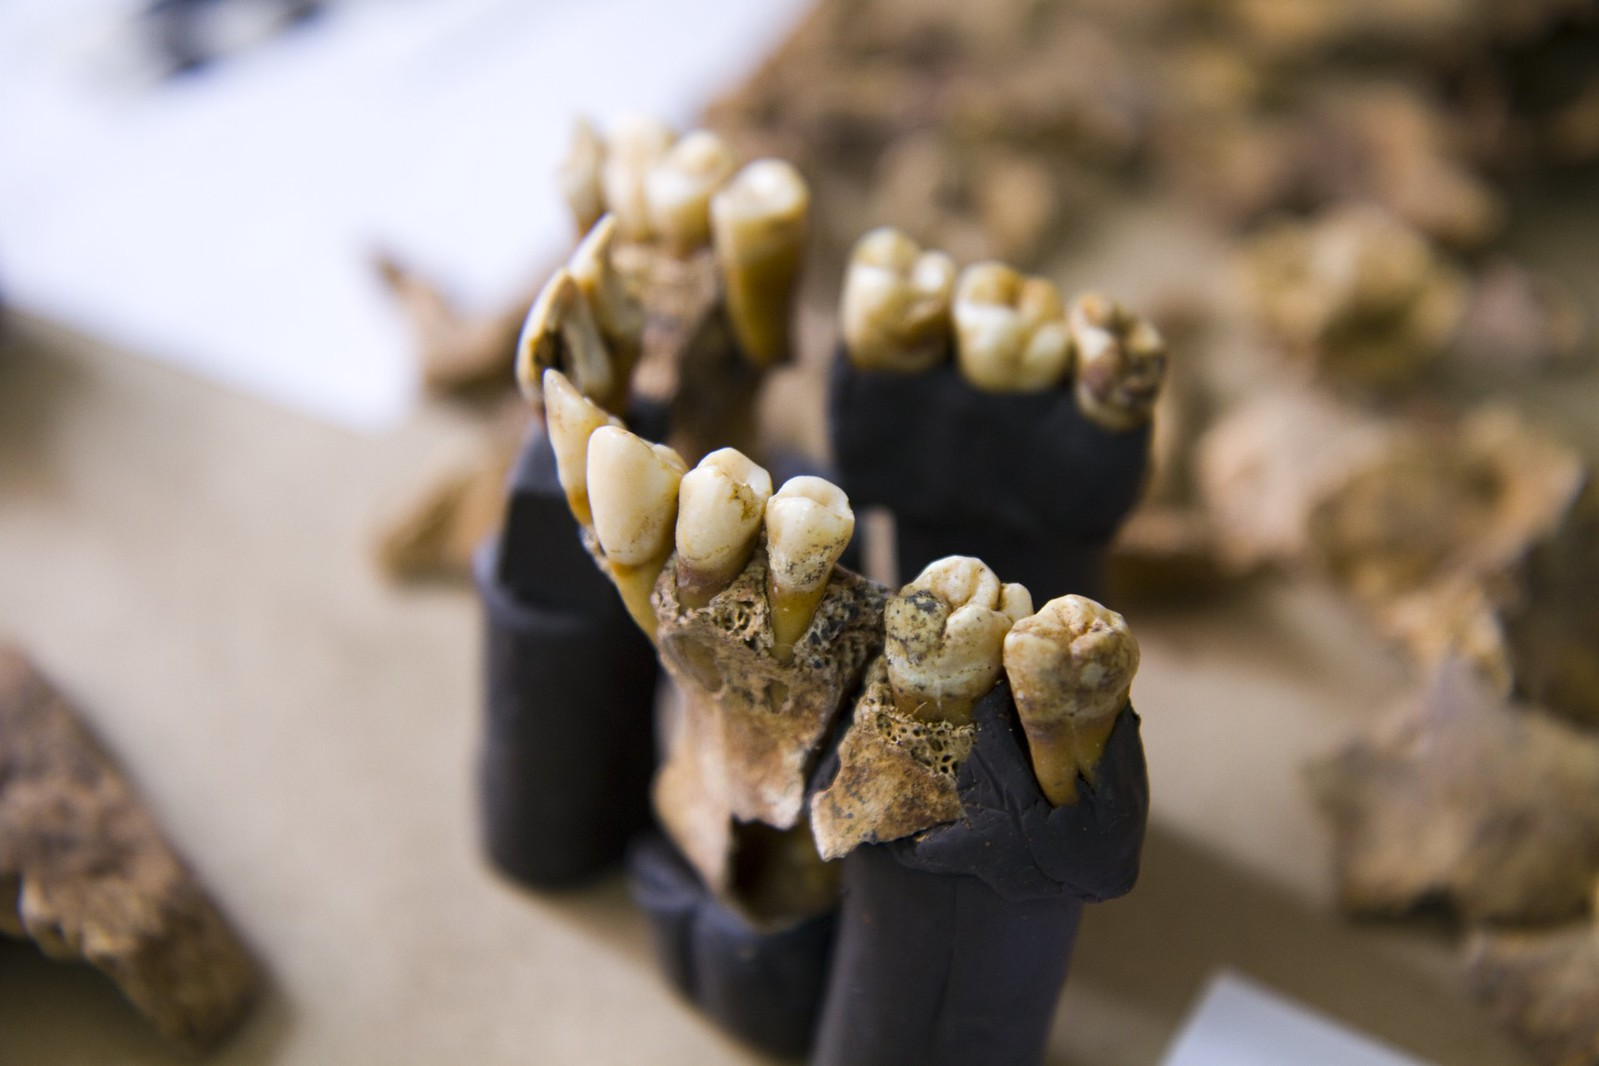 An upper jaw which has been embedded with teeth facing outwards in a black Plasticine type matrix to help hold the fragments together for ease of recording. This jaw is part of an individual recovered from a forensic context